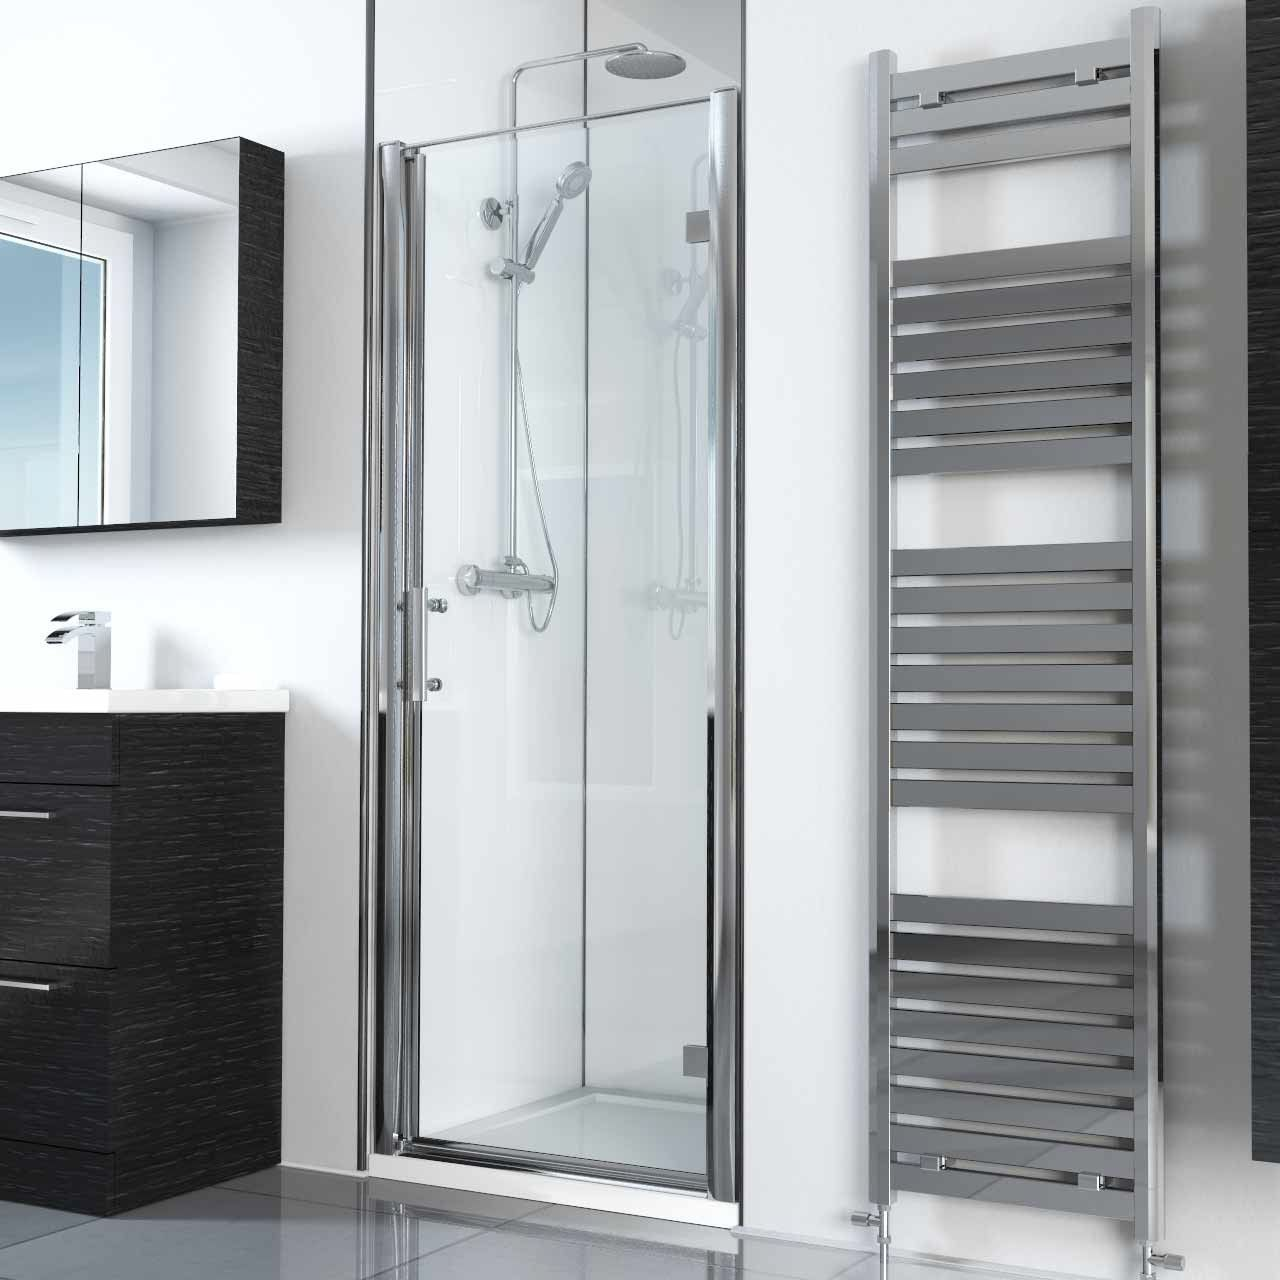 Series 6 760mm Hinged Door Shower Doors Towel Rail Bathroom Interior